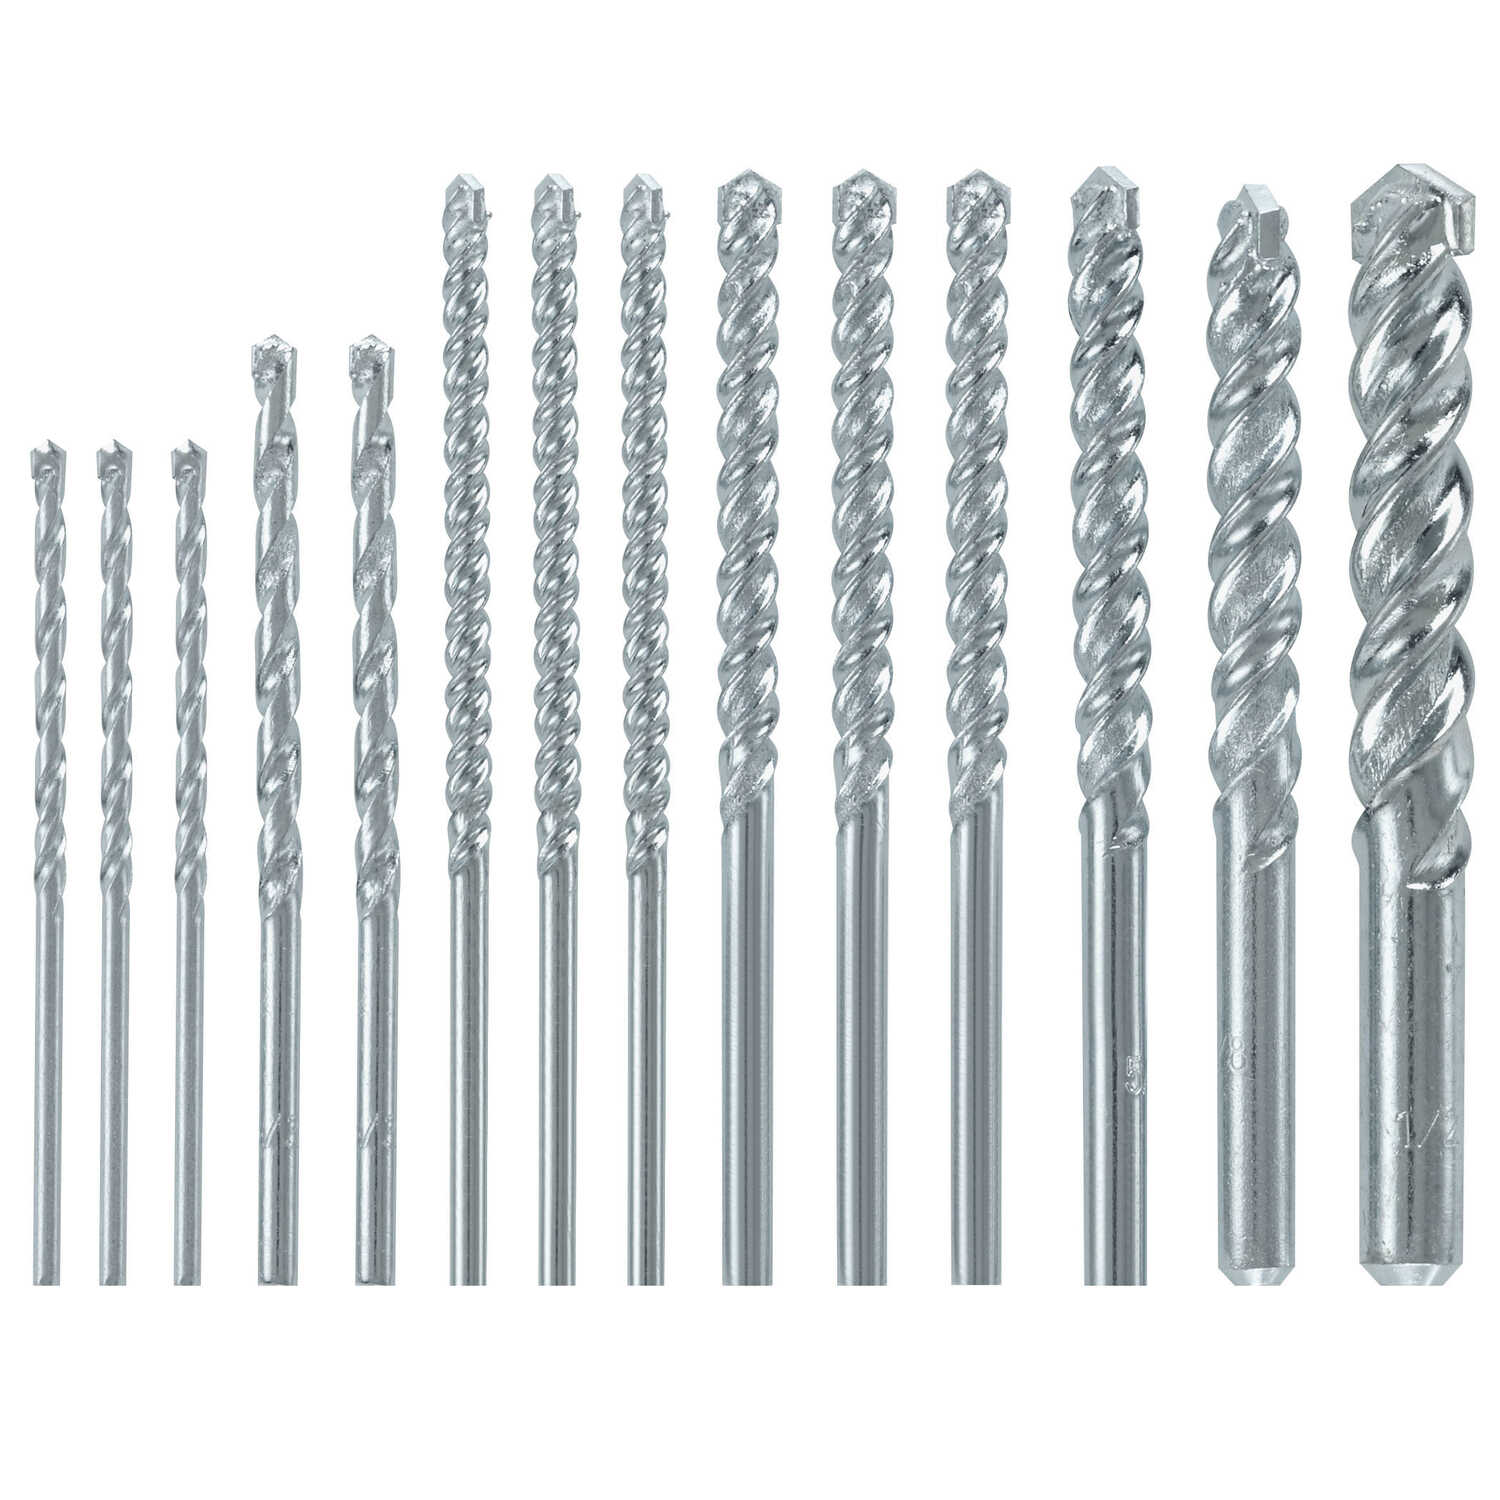 Bosch  Fast Spiral  Multi Size in. Dia. x 6  L Rotary Drill Bit  Carbide Tipped  14 pc. Straight Sha